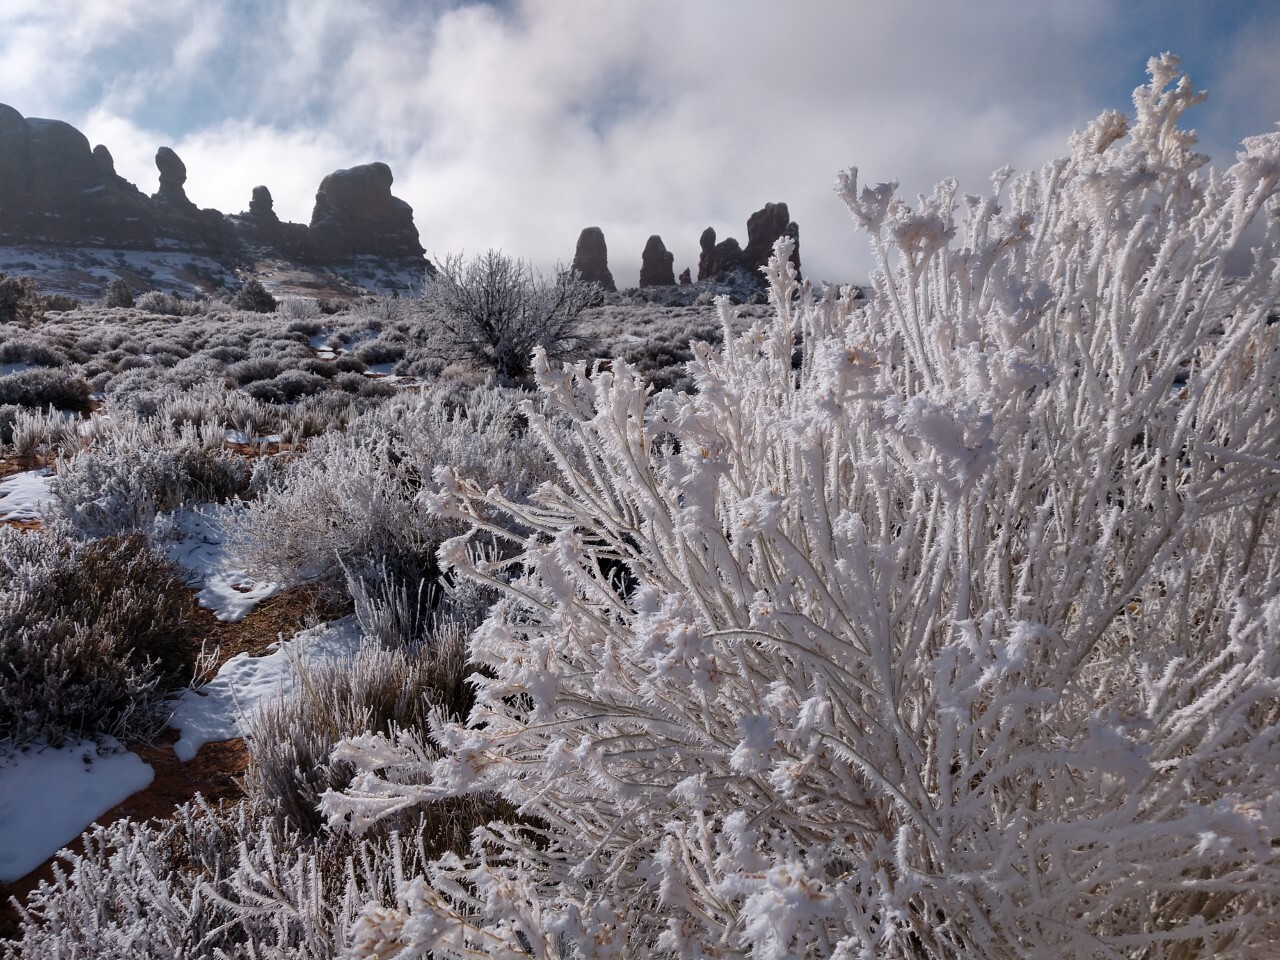 thumbnail_Cuy Photo in Arches Natl Park 12-19-20.jpg